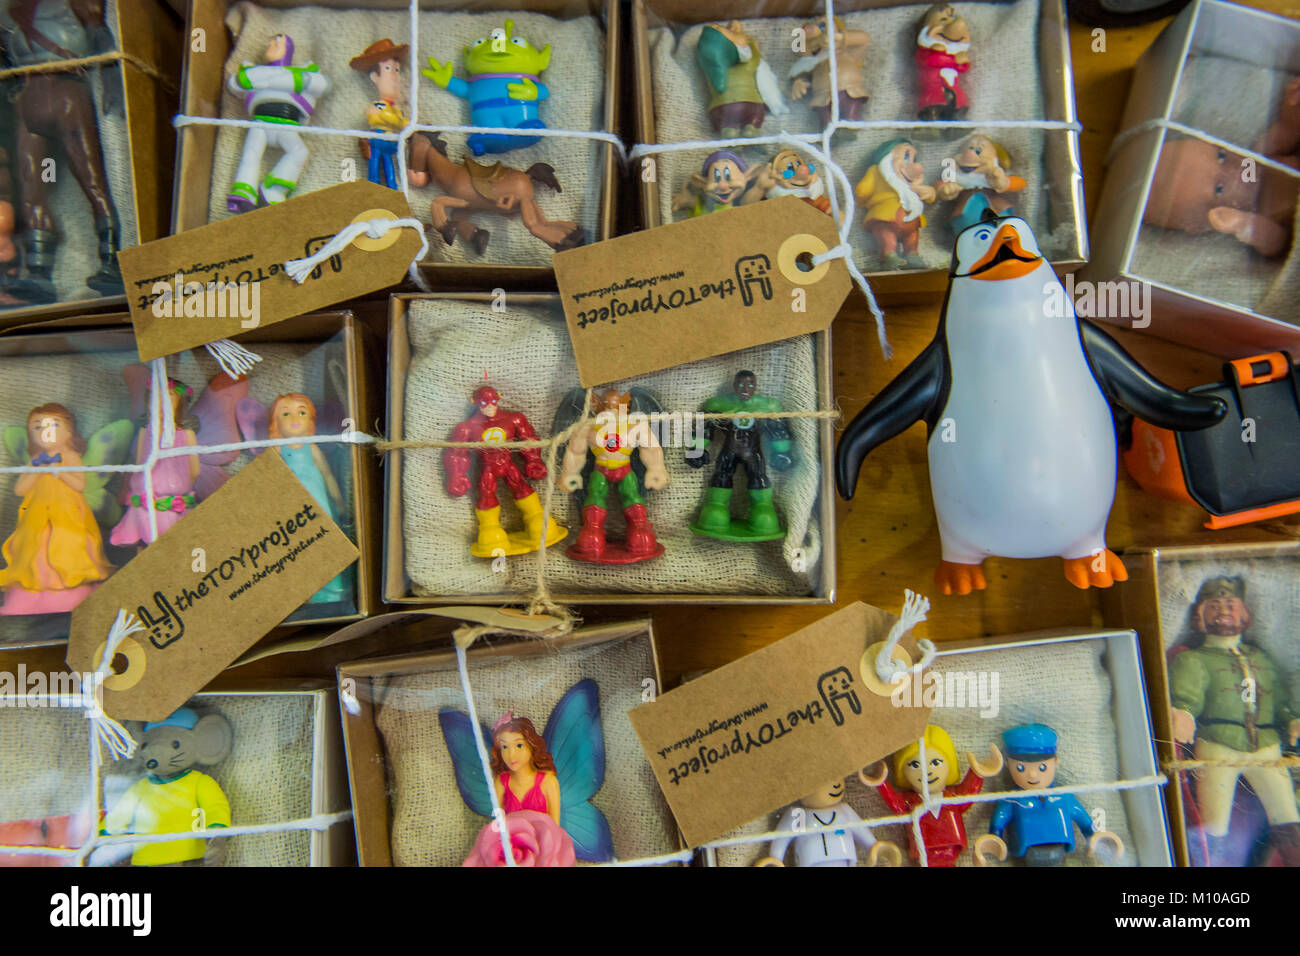 London, UK. 25th Jan, 2018. Toys saved from landfill by The Toy Project Charity, which recycles unwanted toy to - Stock Image